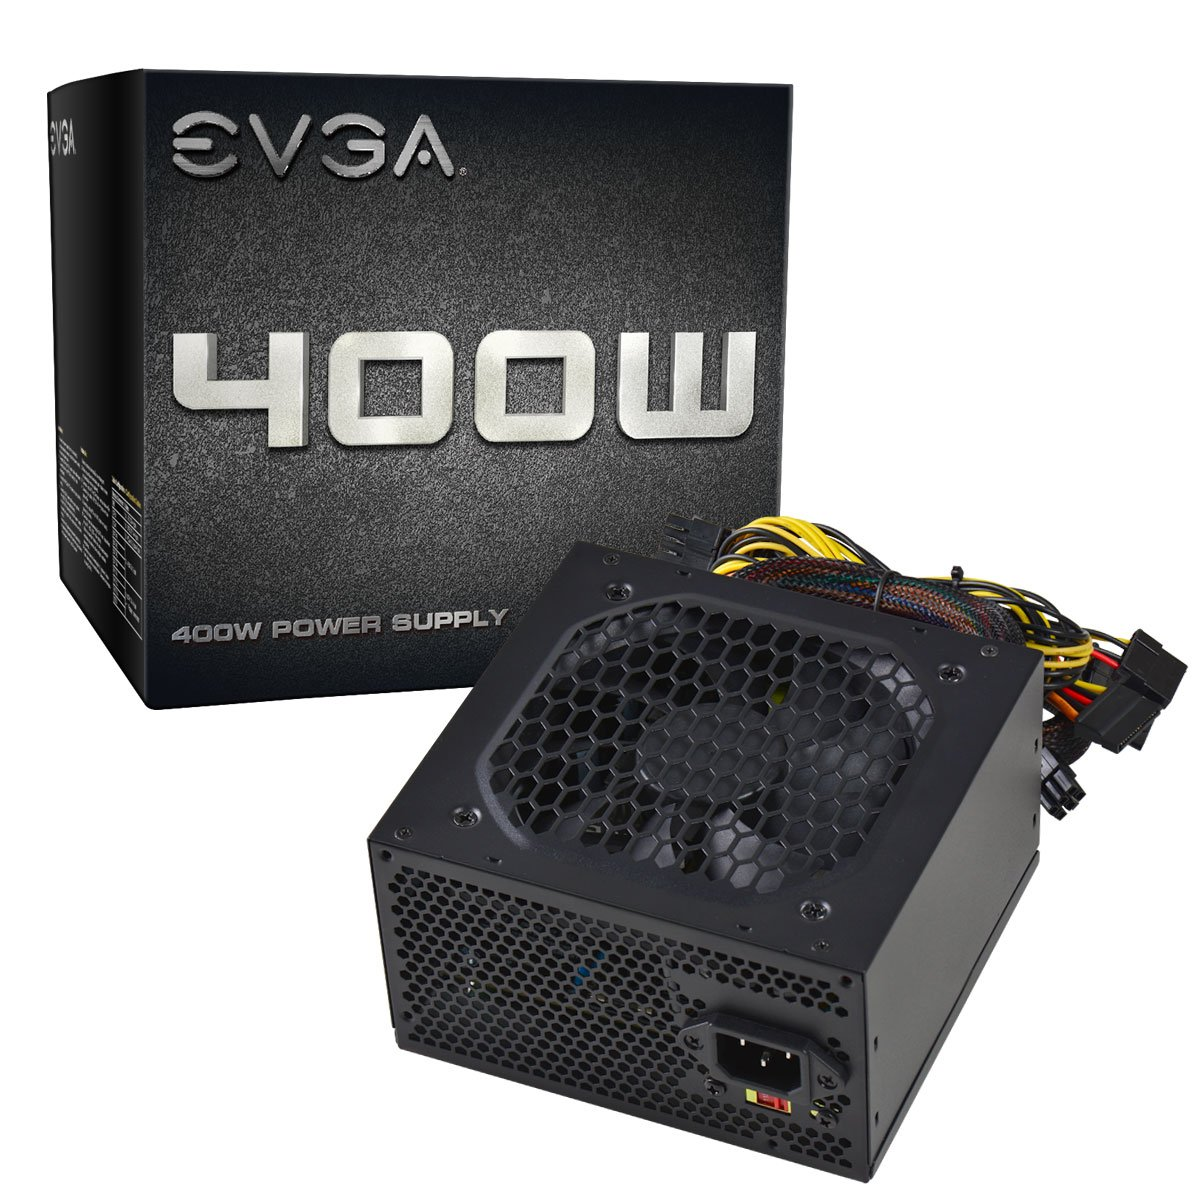 EVGA 400 N1, 400W, 2 Year Warranty, Power Supply 100-N1-0400-L1 by EVGA